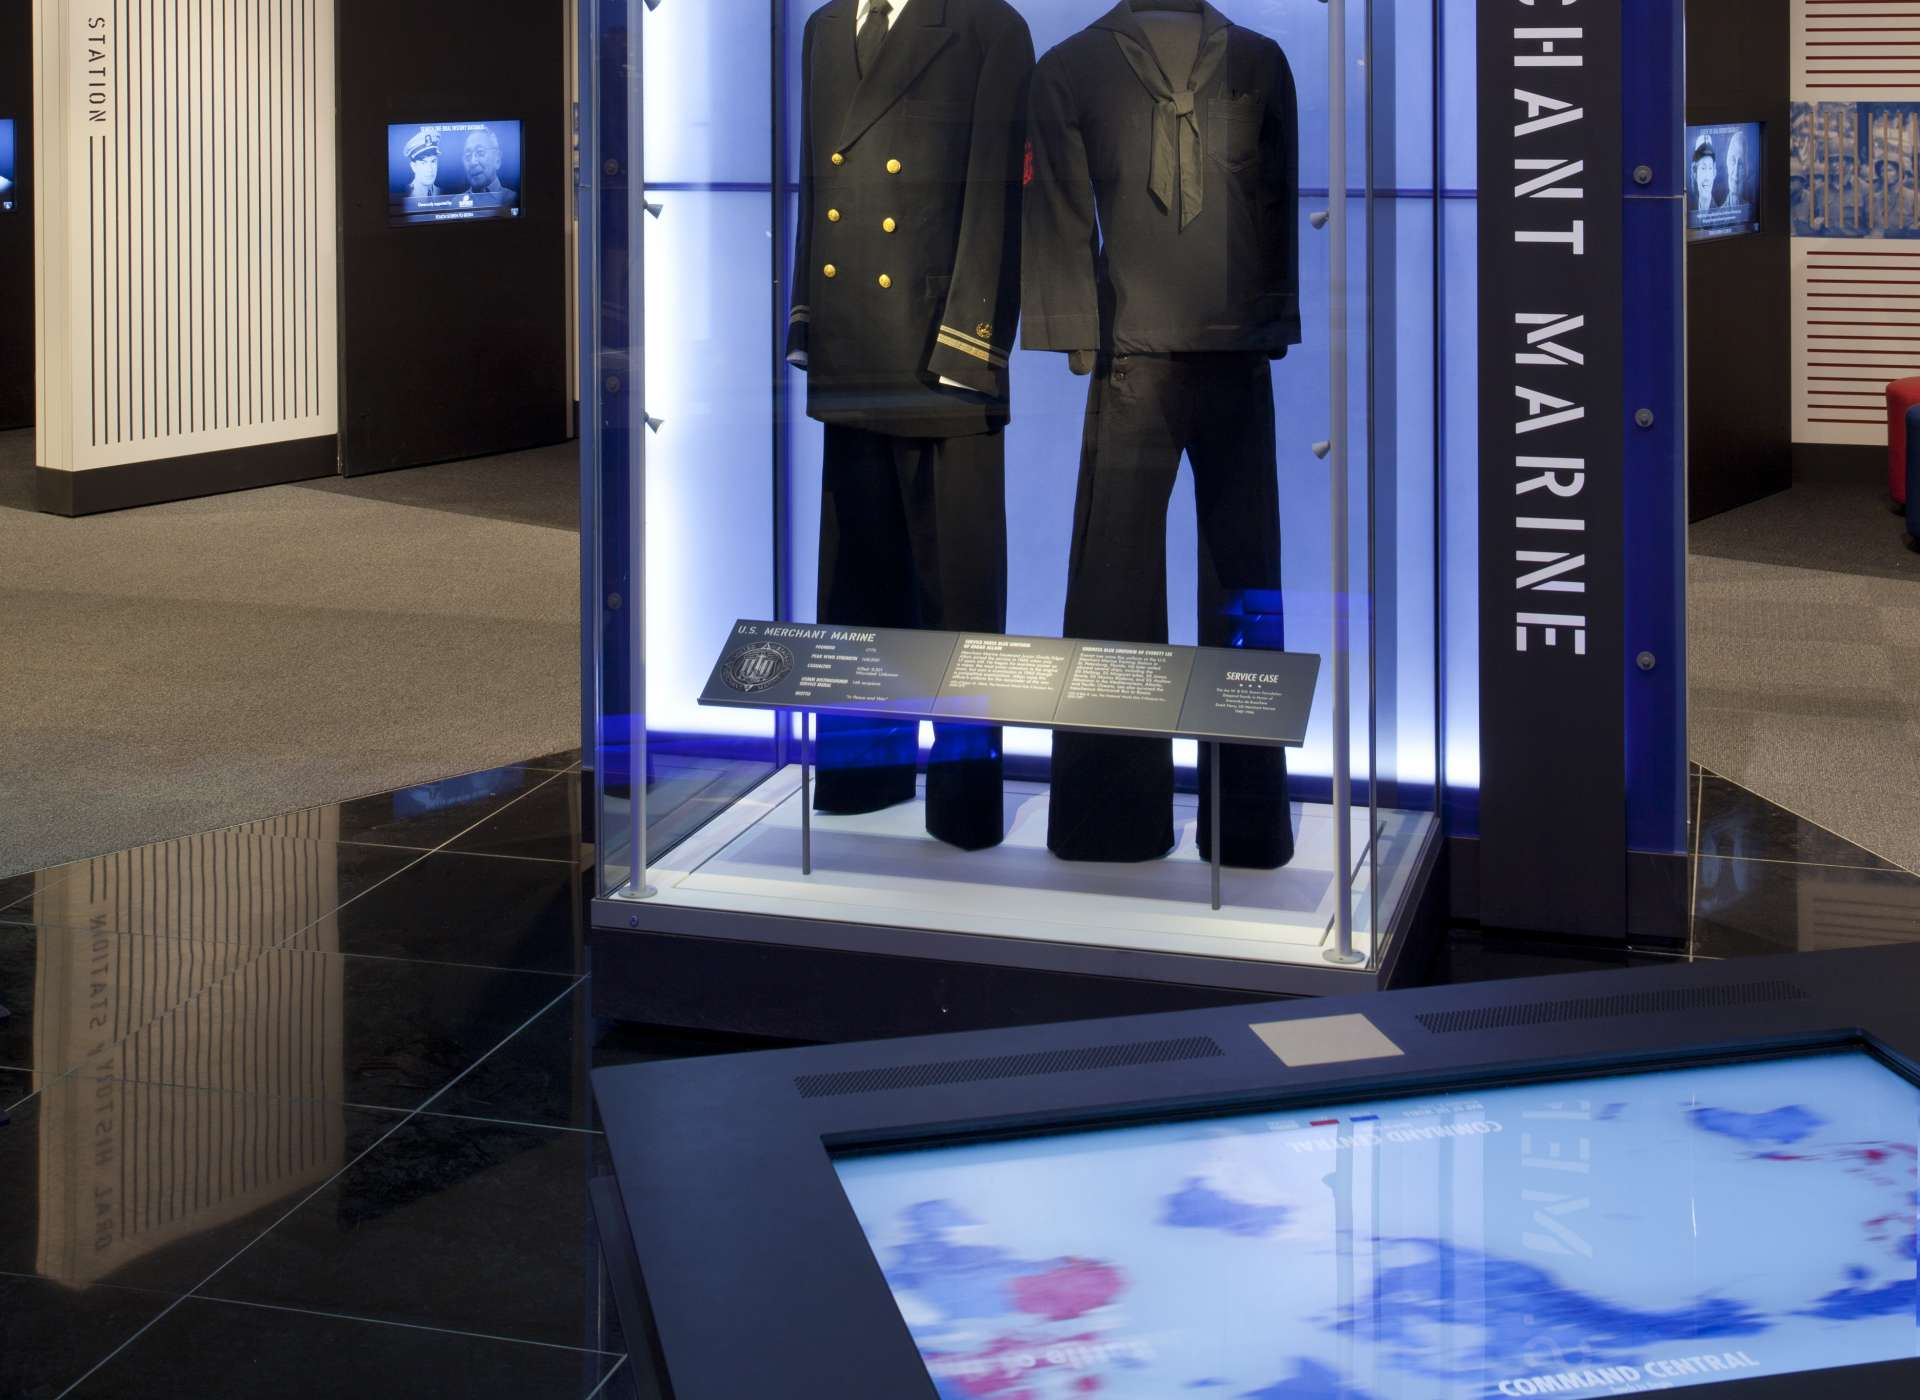 Laborde Services Gallery, US Freedom Pavilion, Merchant Marine uniforms